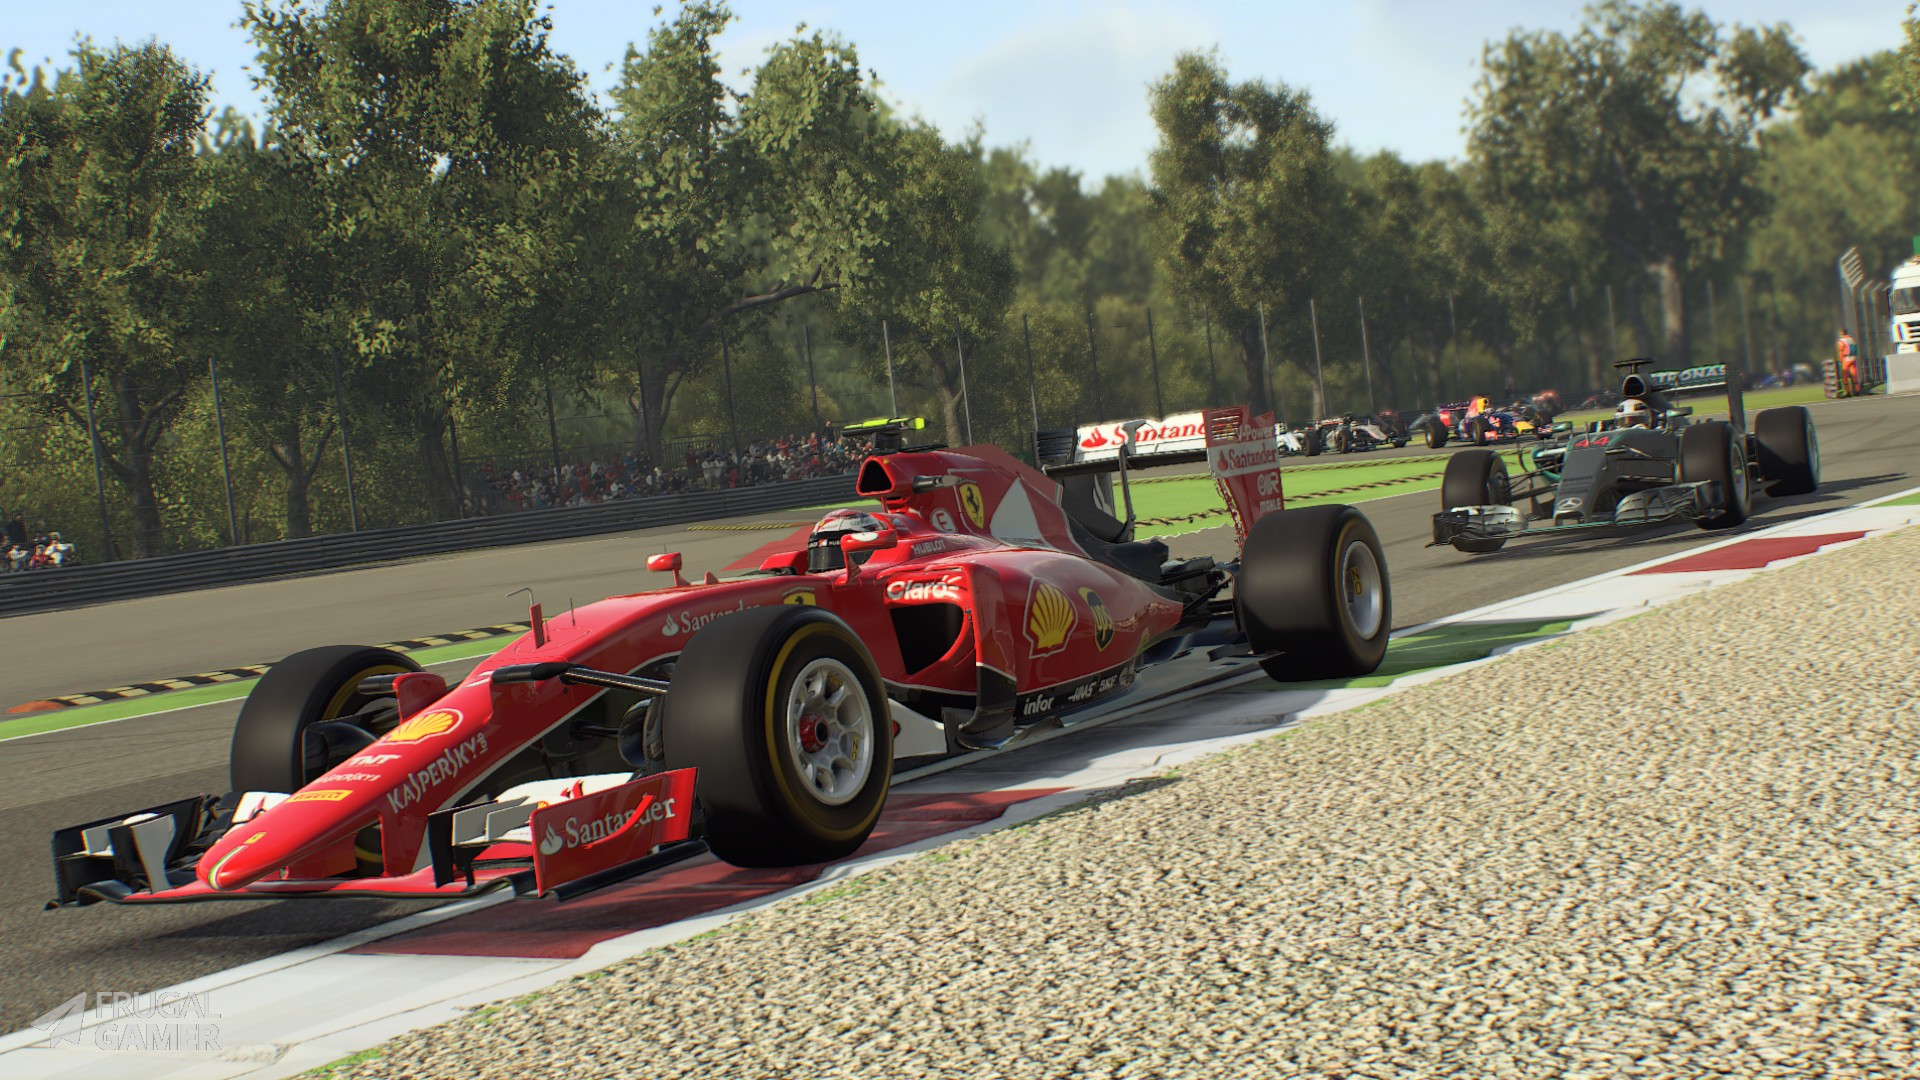 F1 2015 - Windows PC and Linux - Save 90% on Steam Key